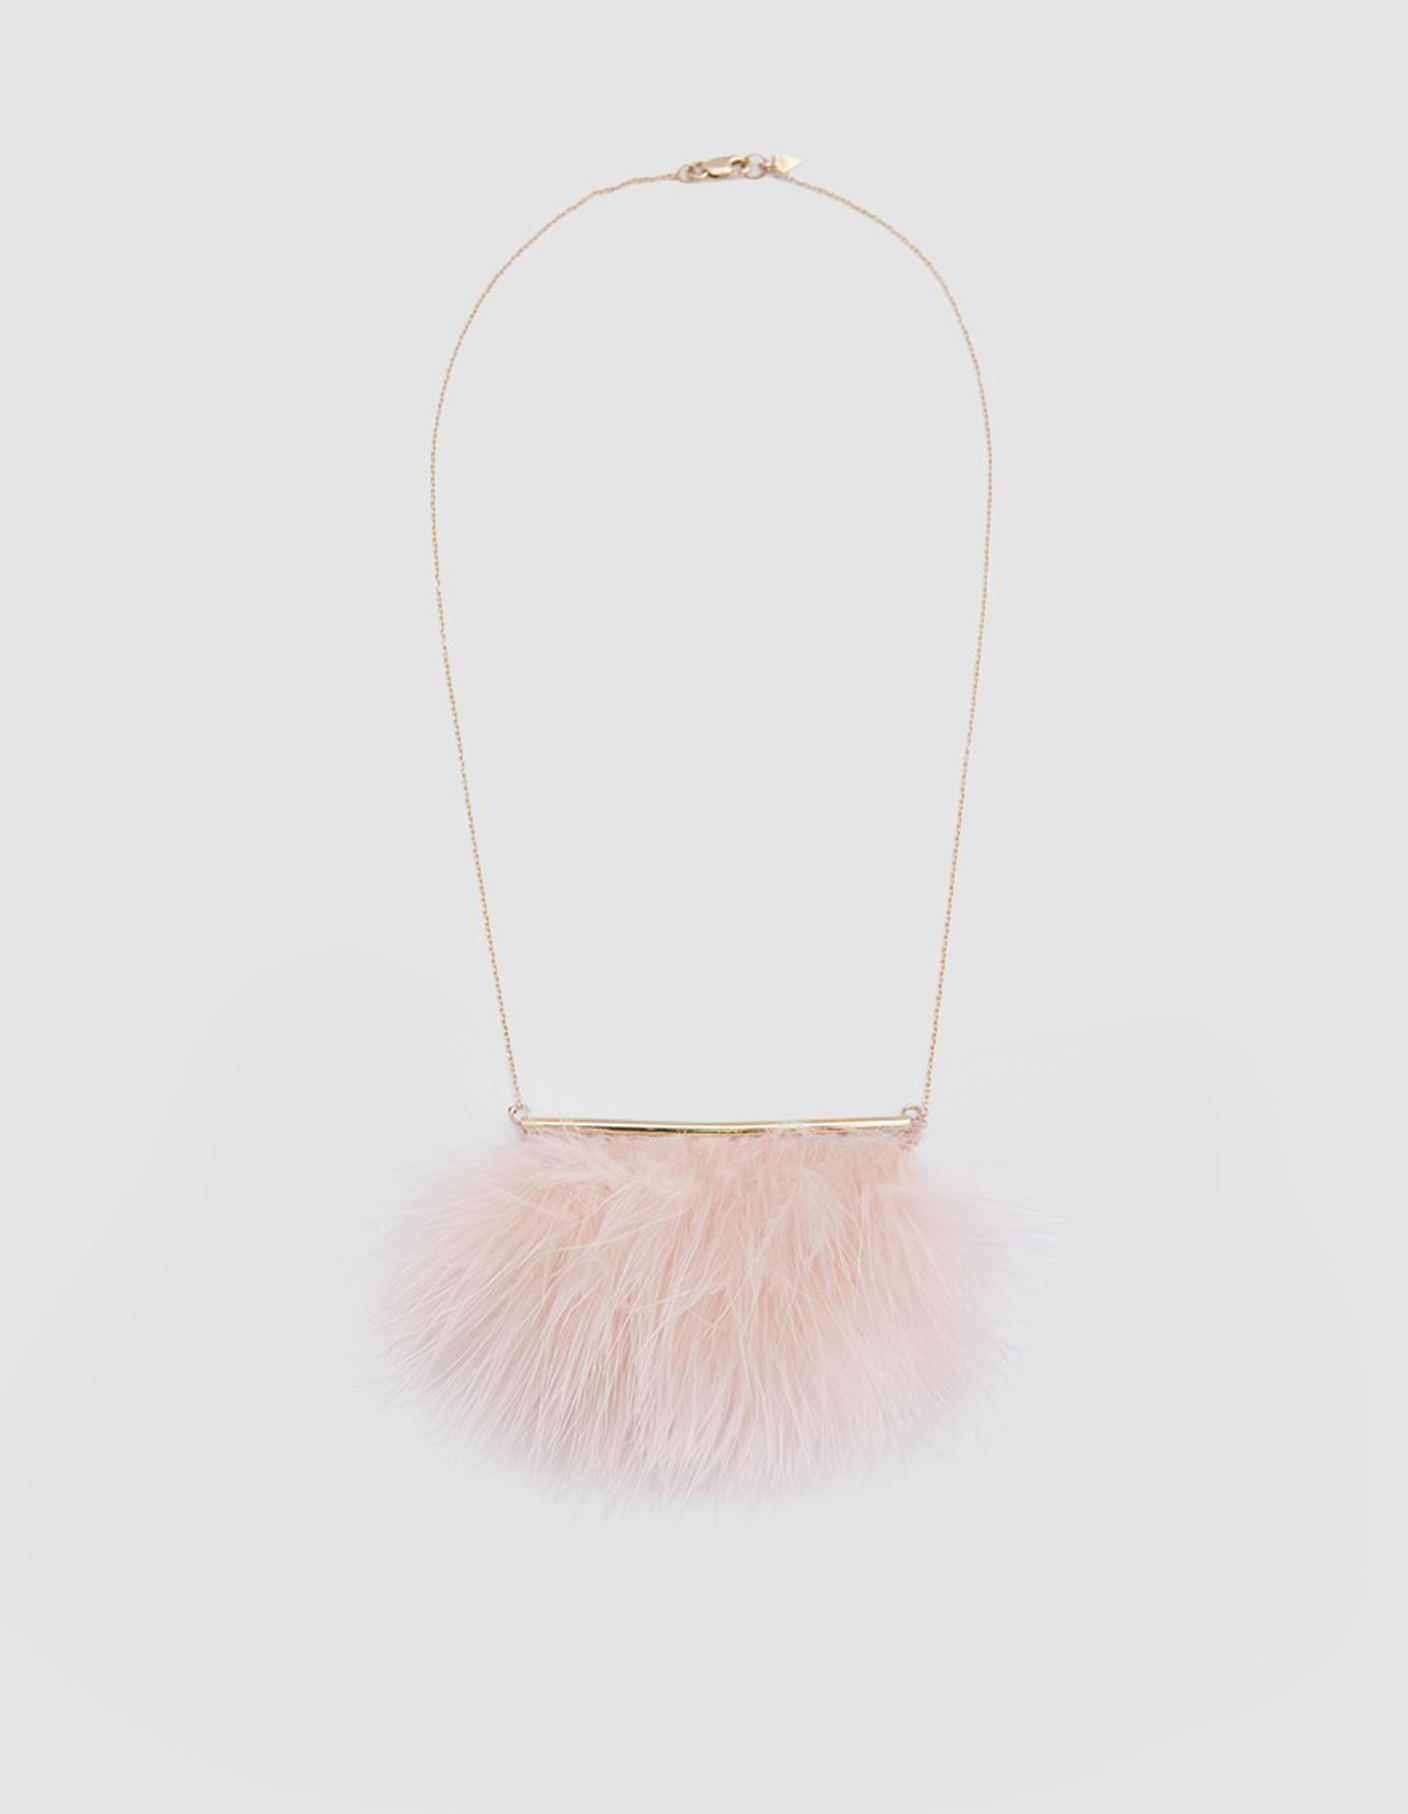 pink feather necklace | @themissprints